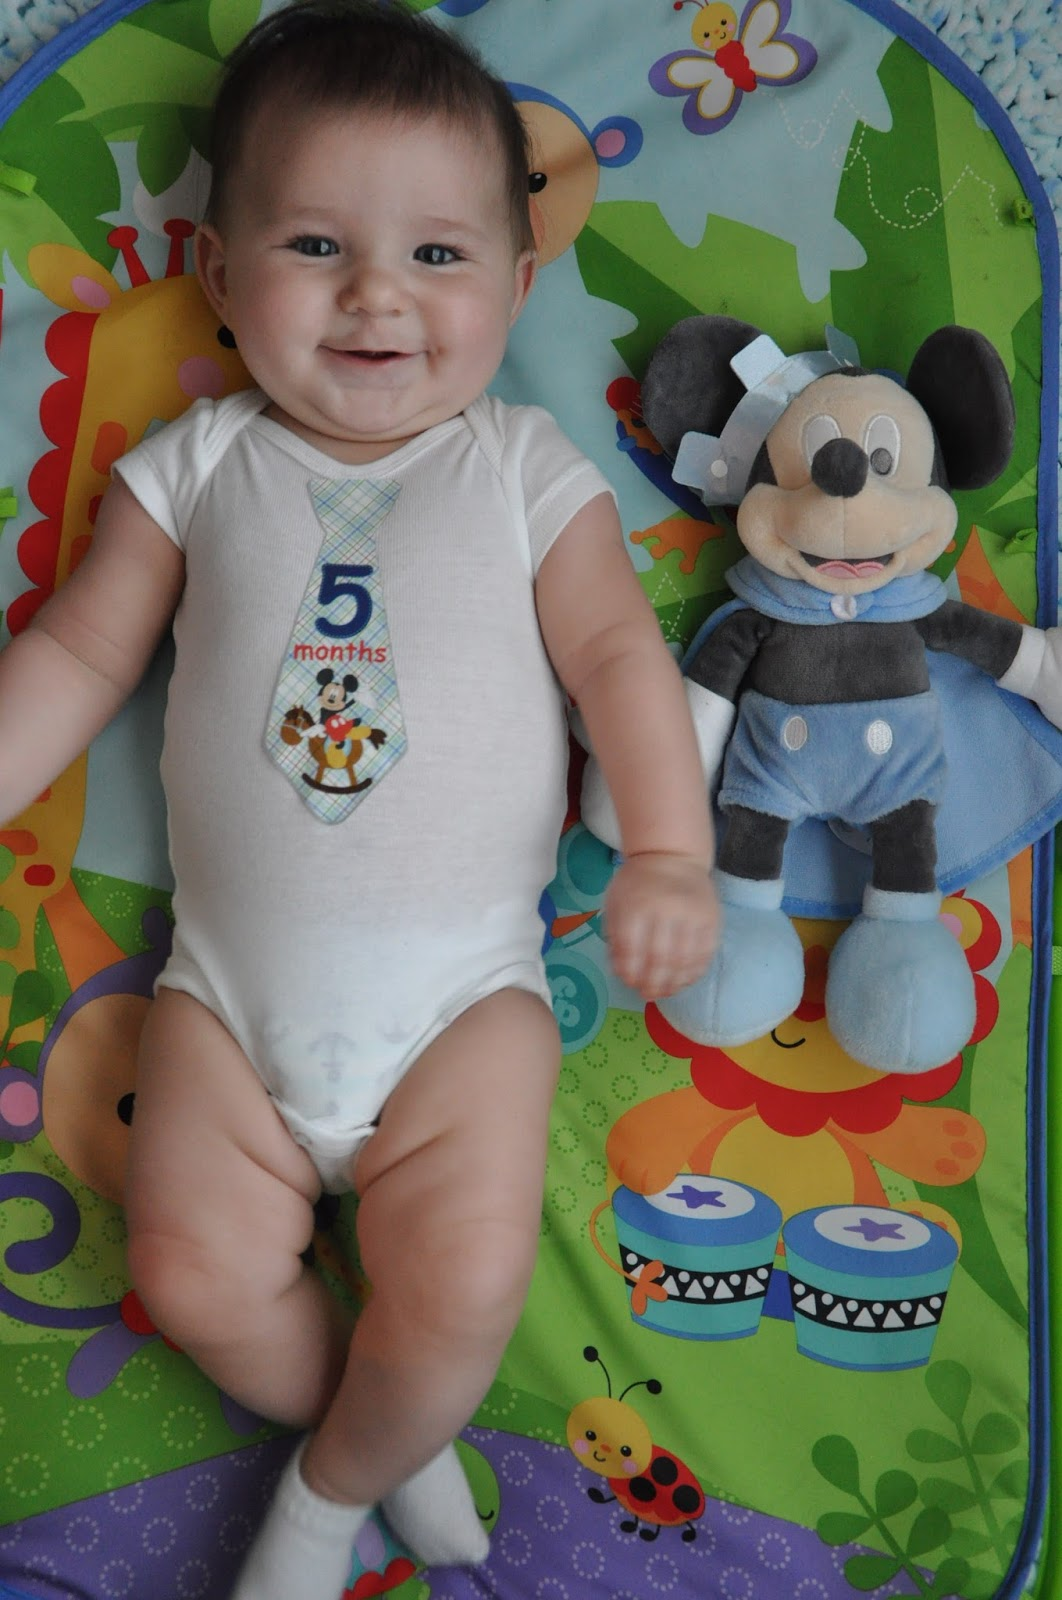 5 Months For Baby Toys : Clothing months and